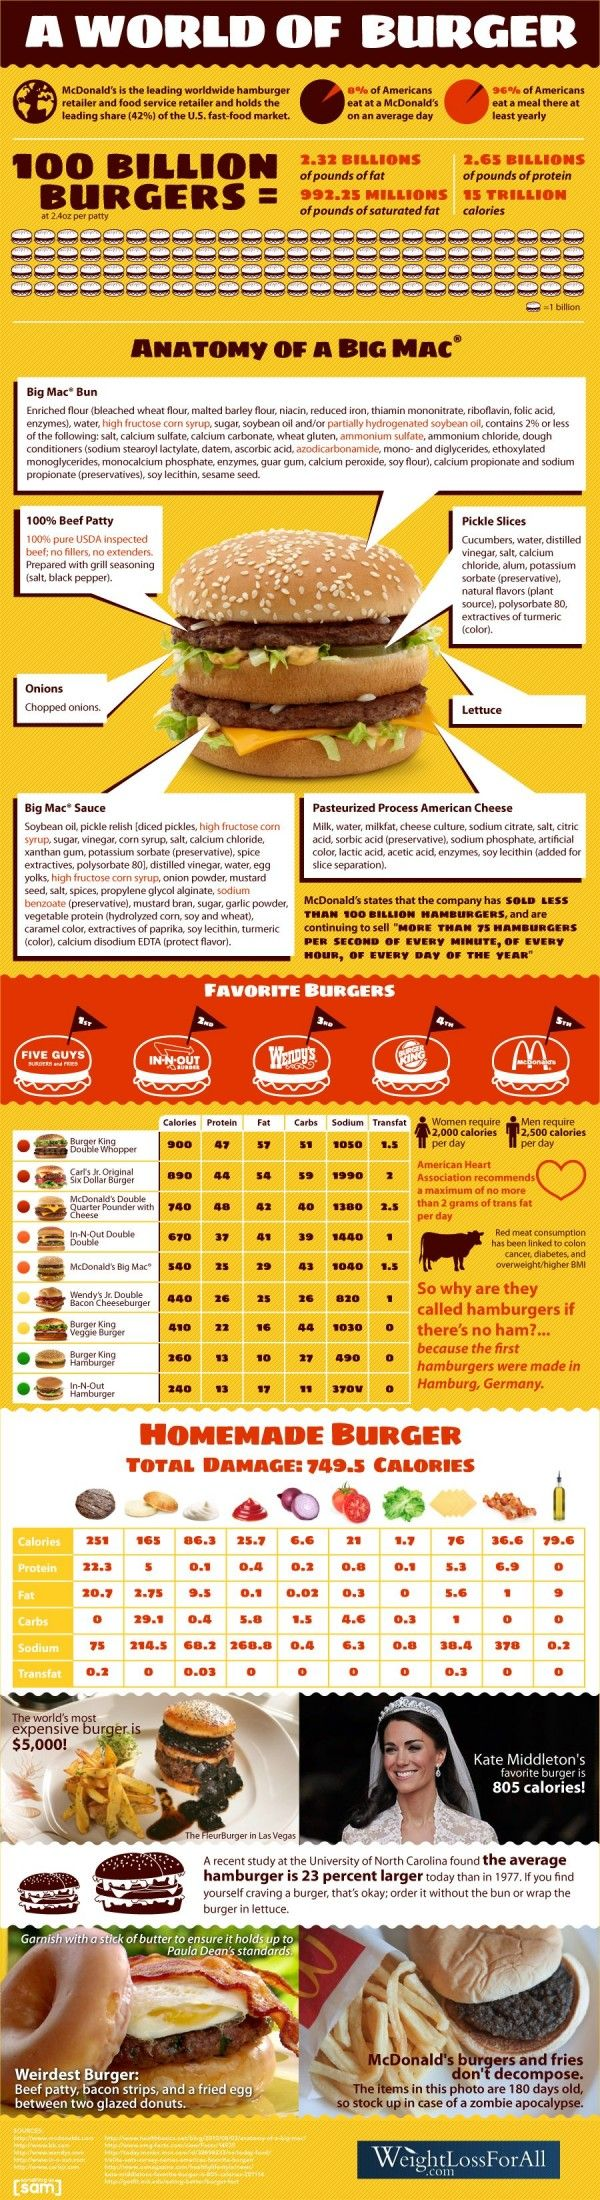 Everything you did or did not was to know about hamburgers.       http://thirtyhandmadedays.com/wp-content/uploads/2011/05/cuteasabuttonteacher.png